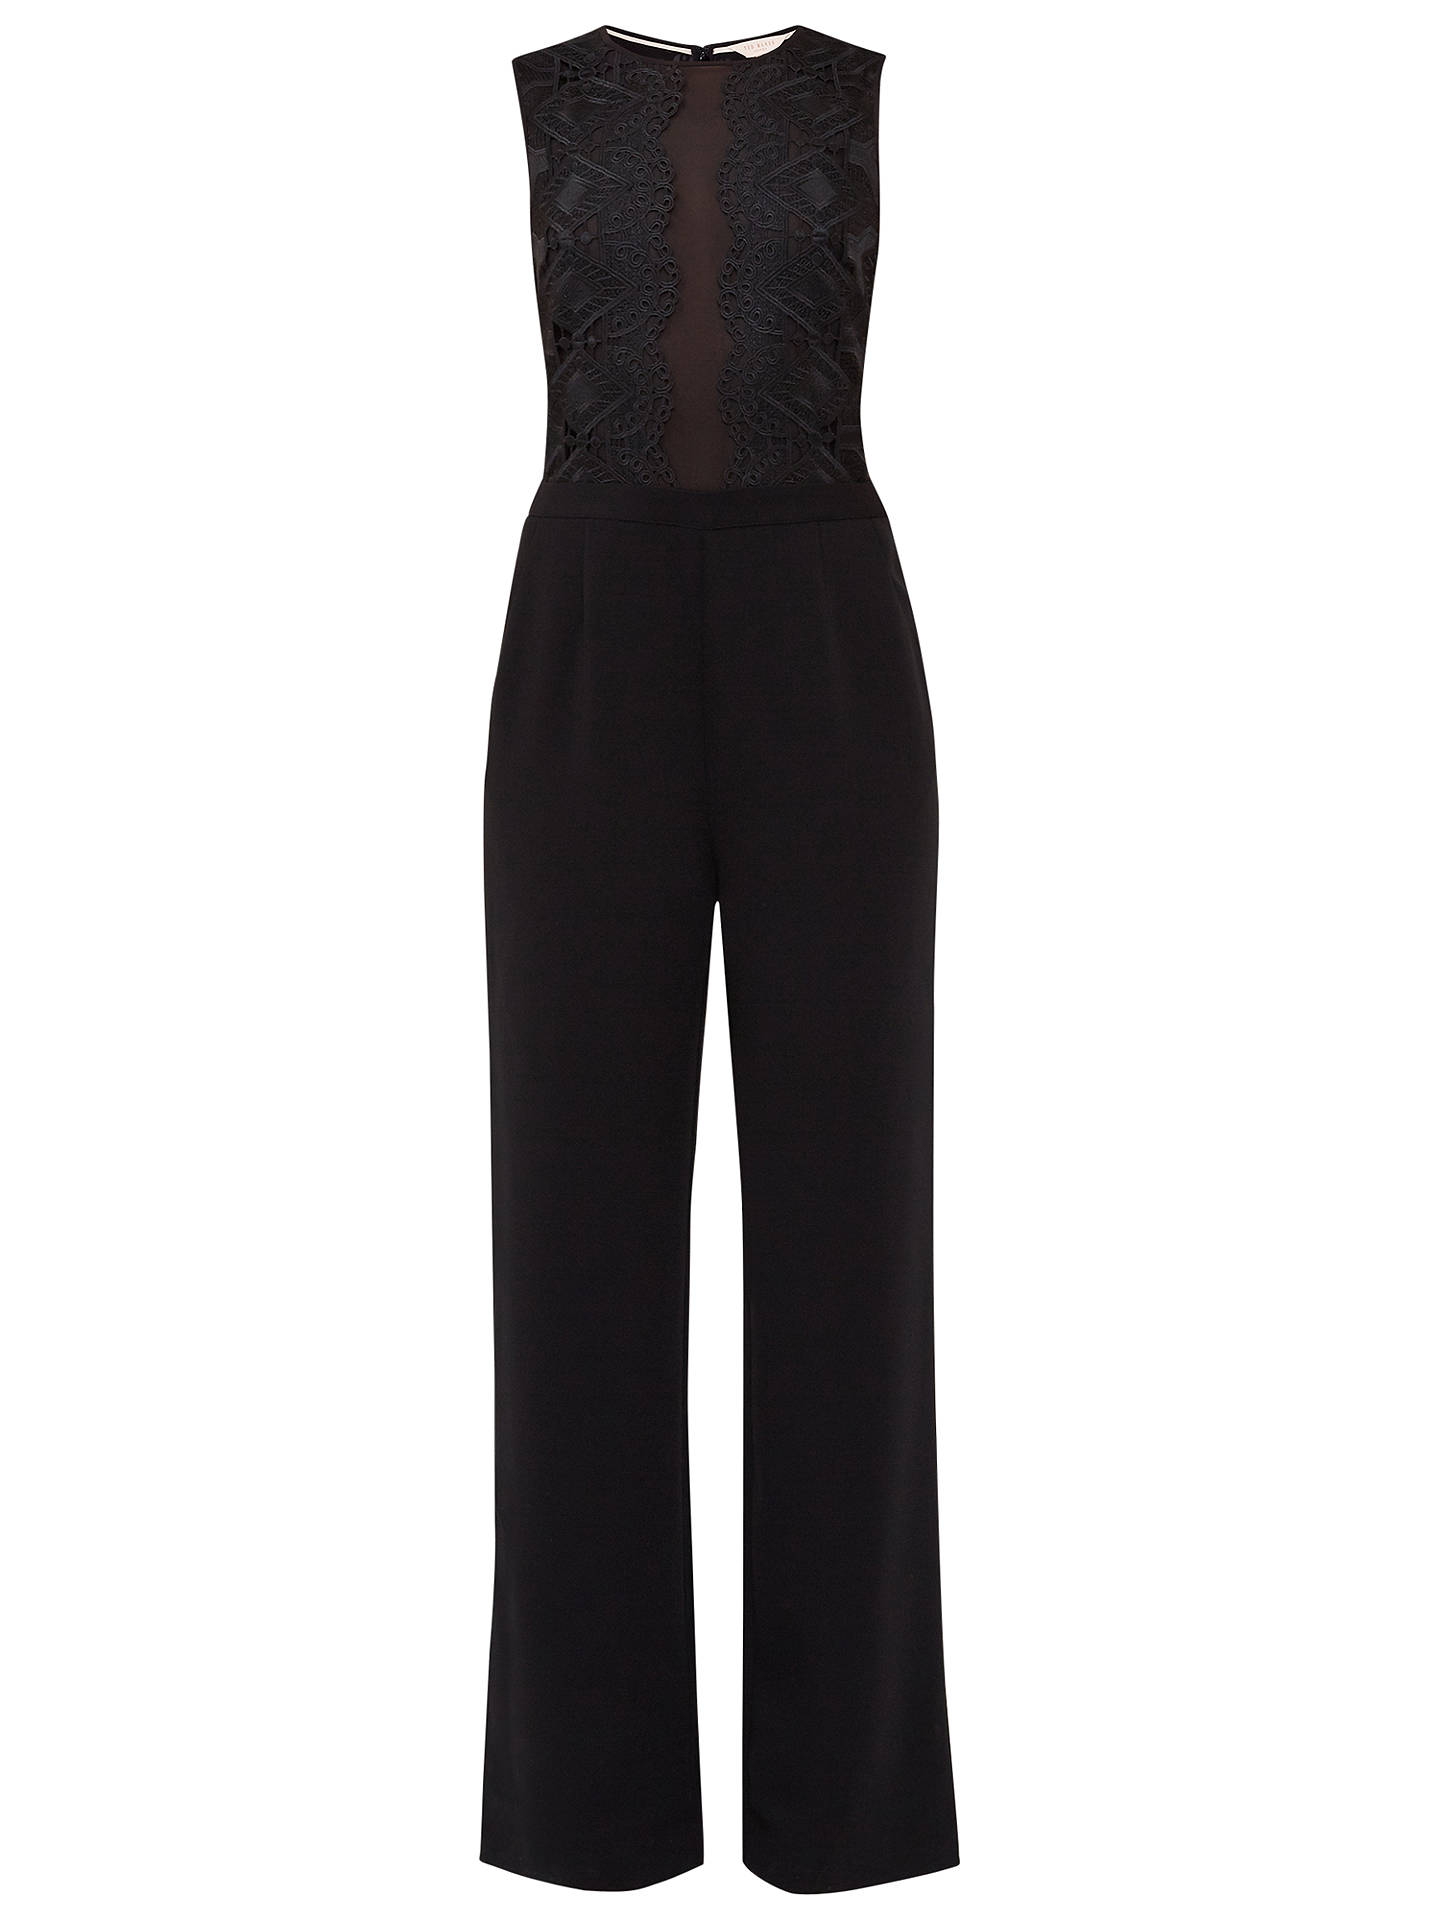 b23eacb73fea Buy Ted Baker Kayle Lace Panel Jumpsuit